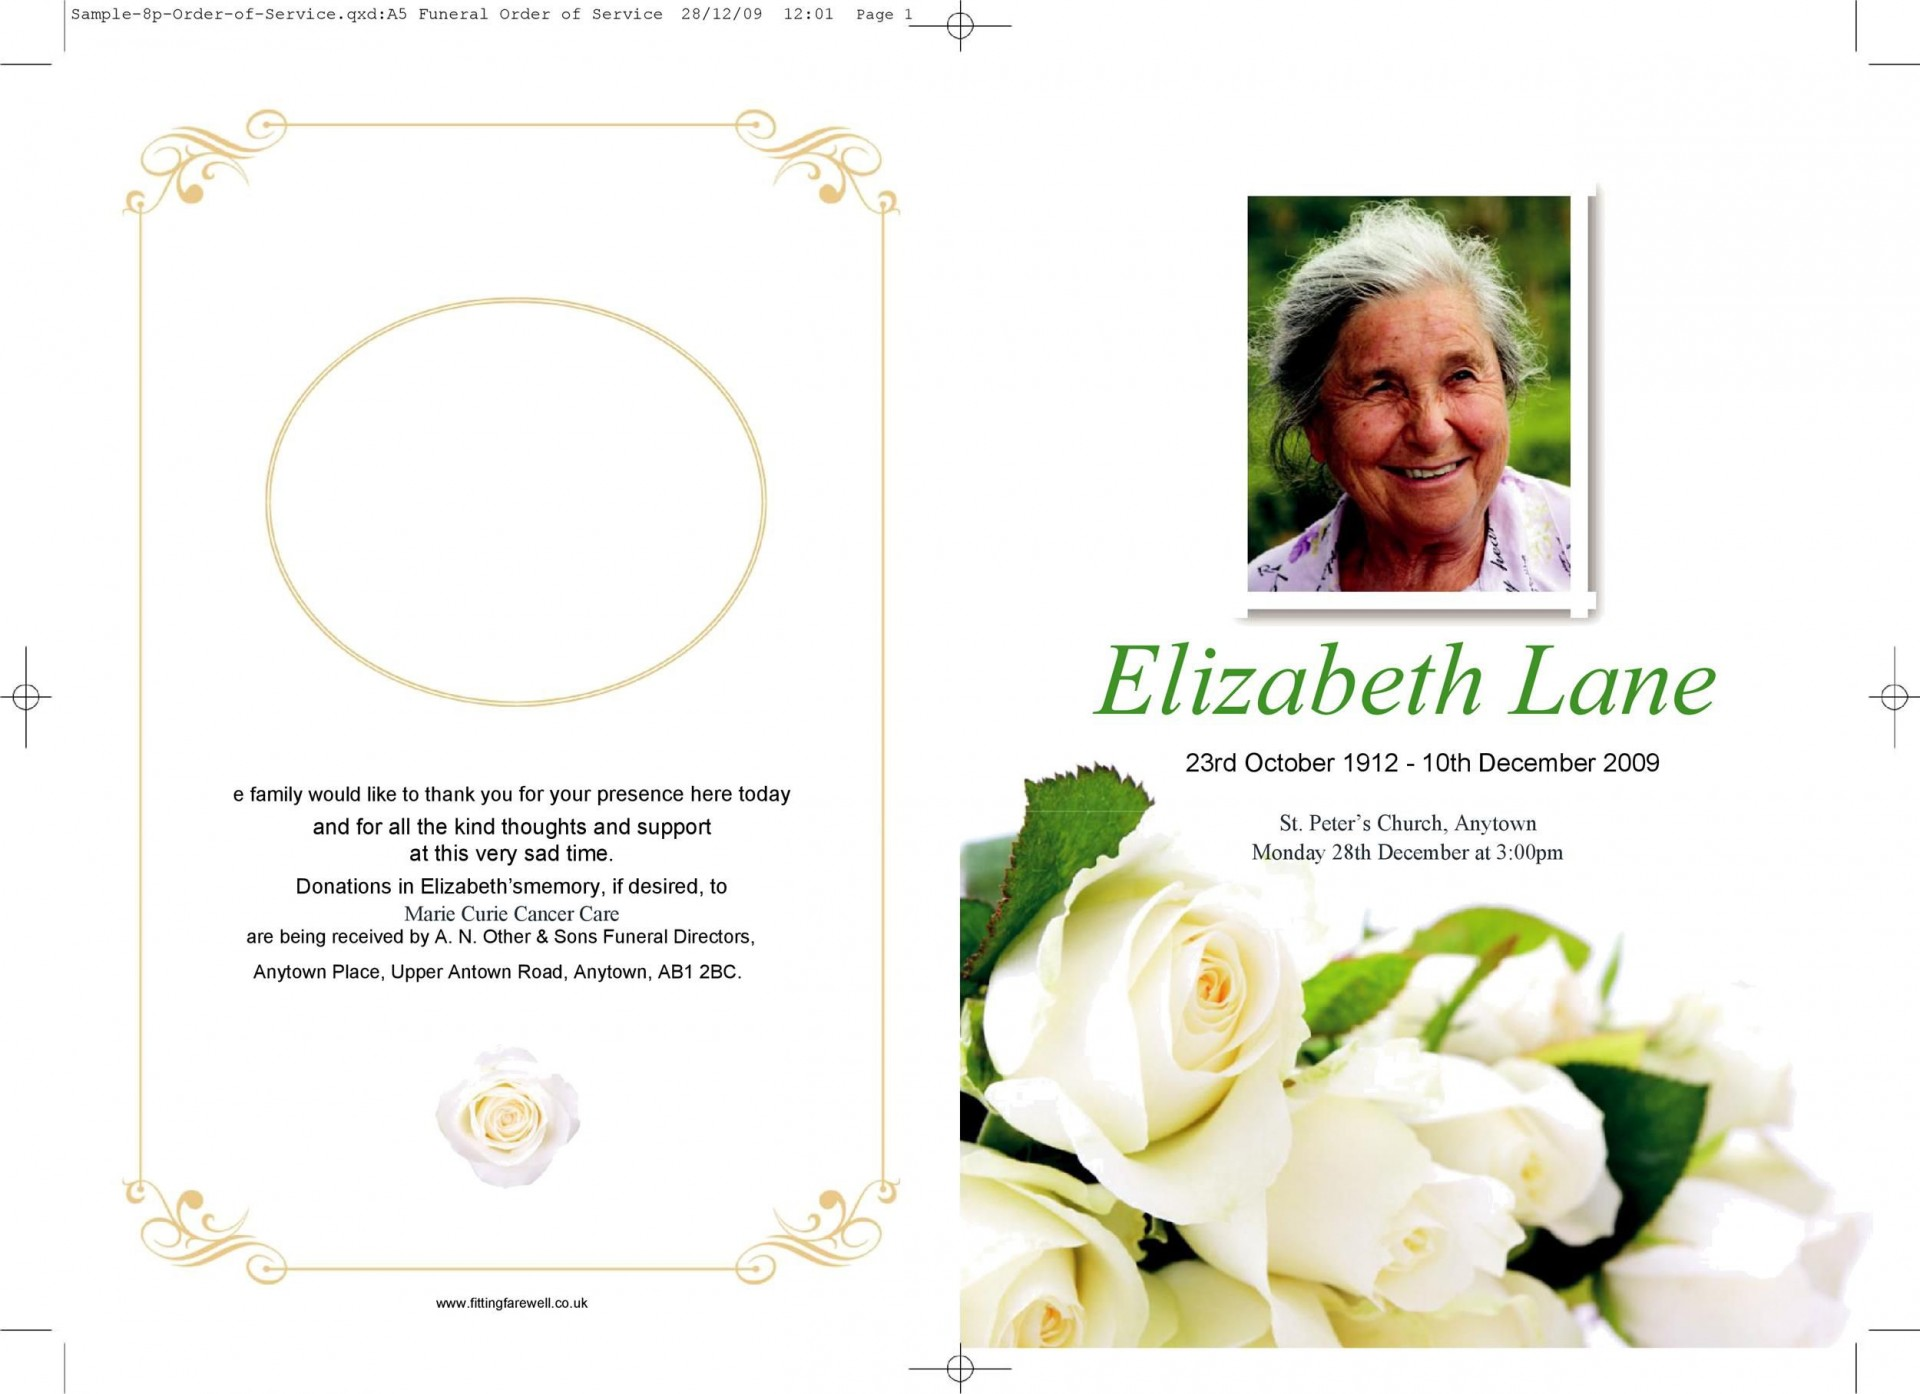 008 Stunning Funeral Program Template Free Photo  Online Printable Download Publisher1920